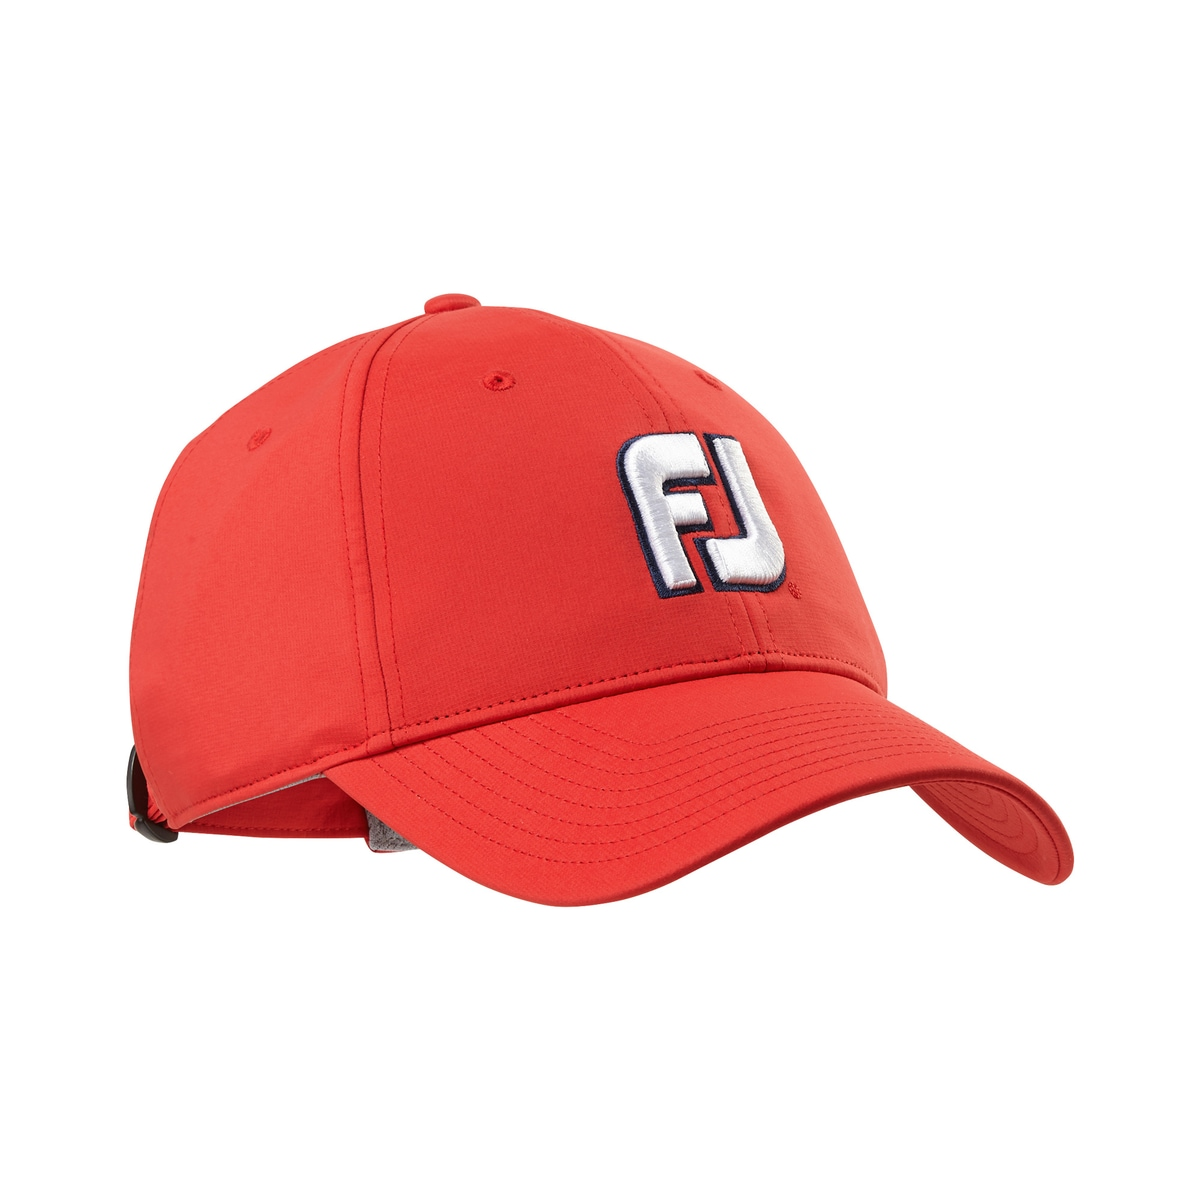 FJ Fashion Adjustable Cap